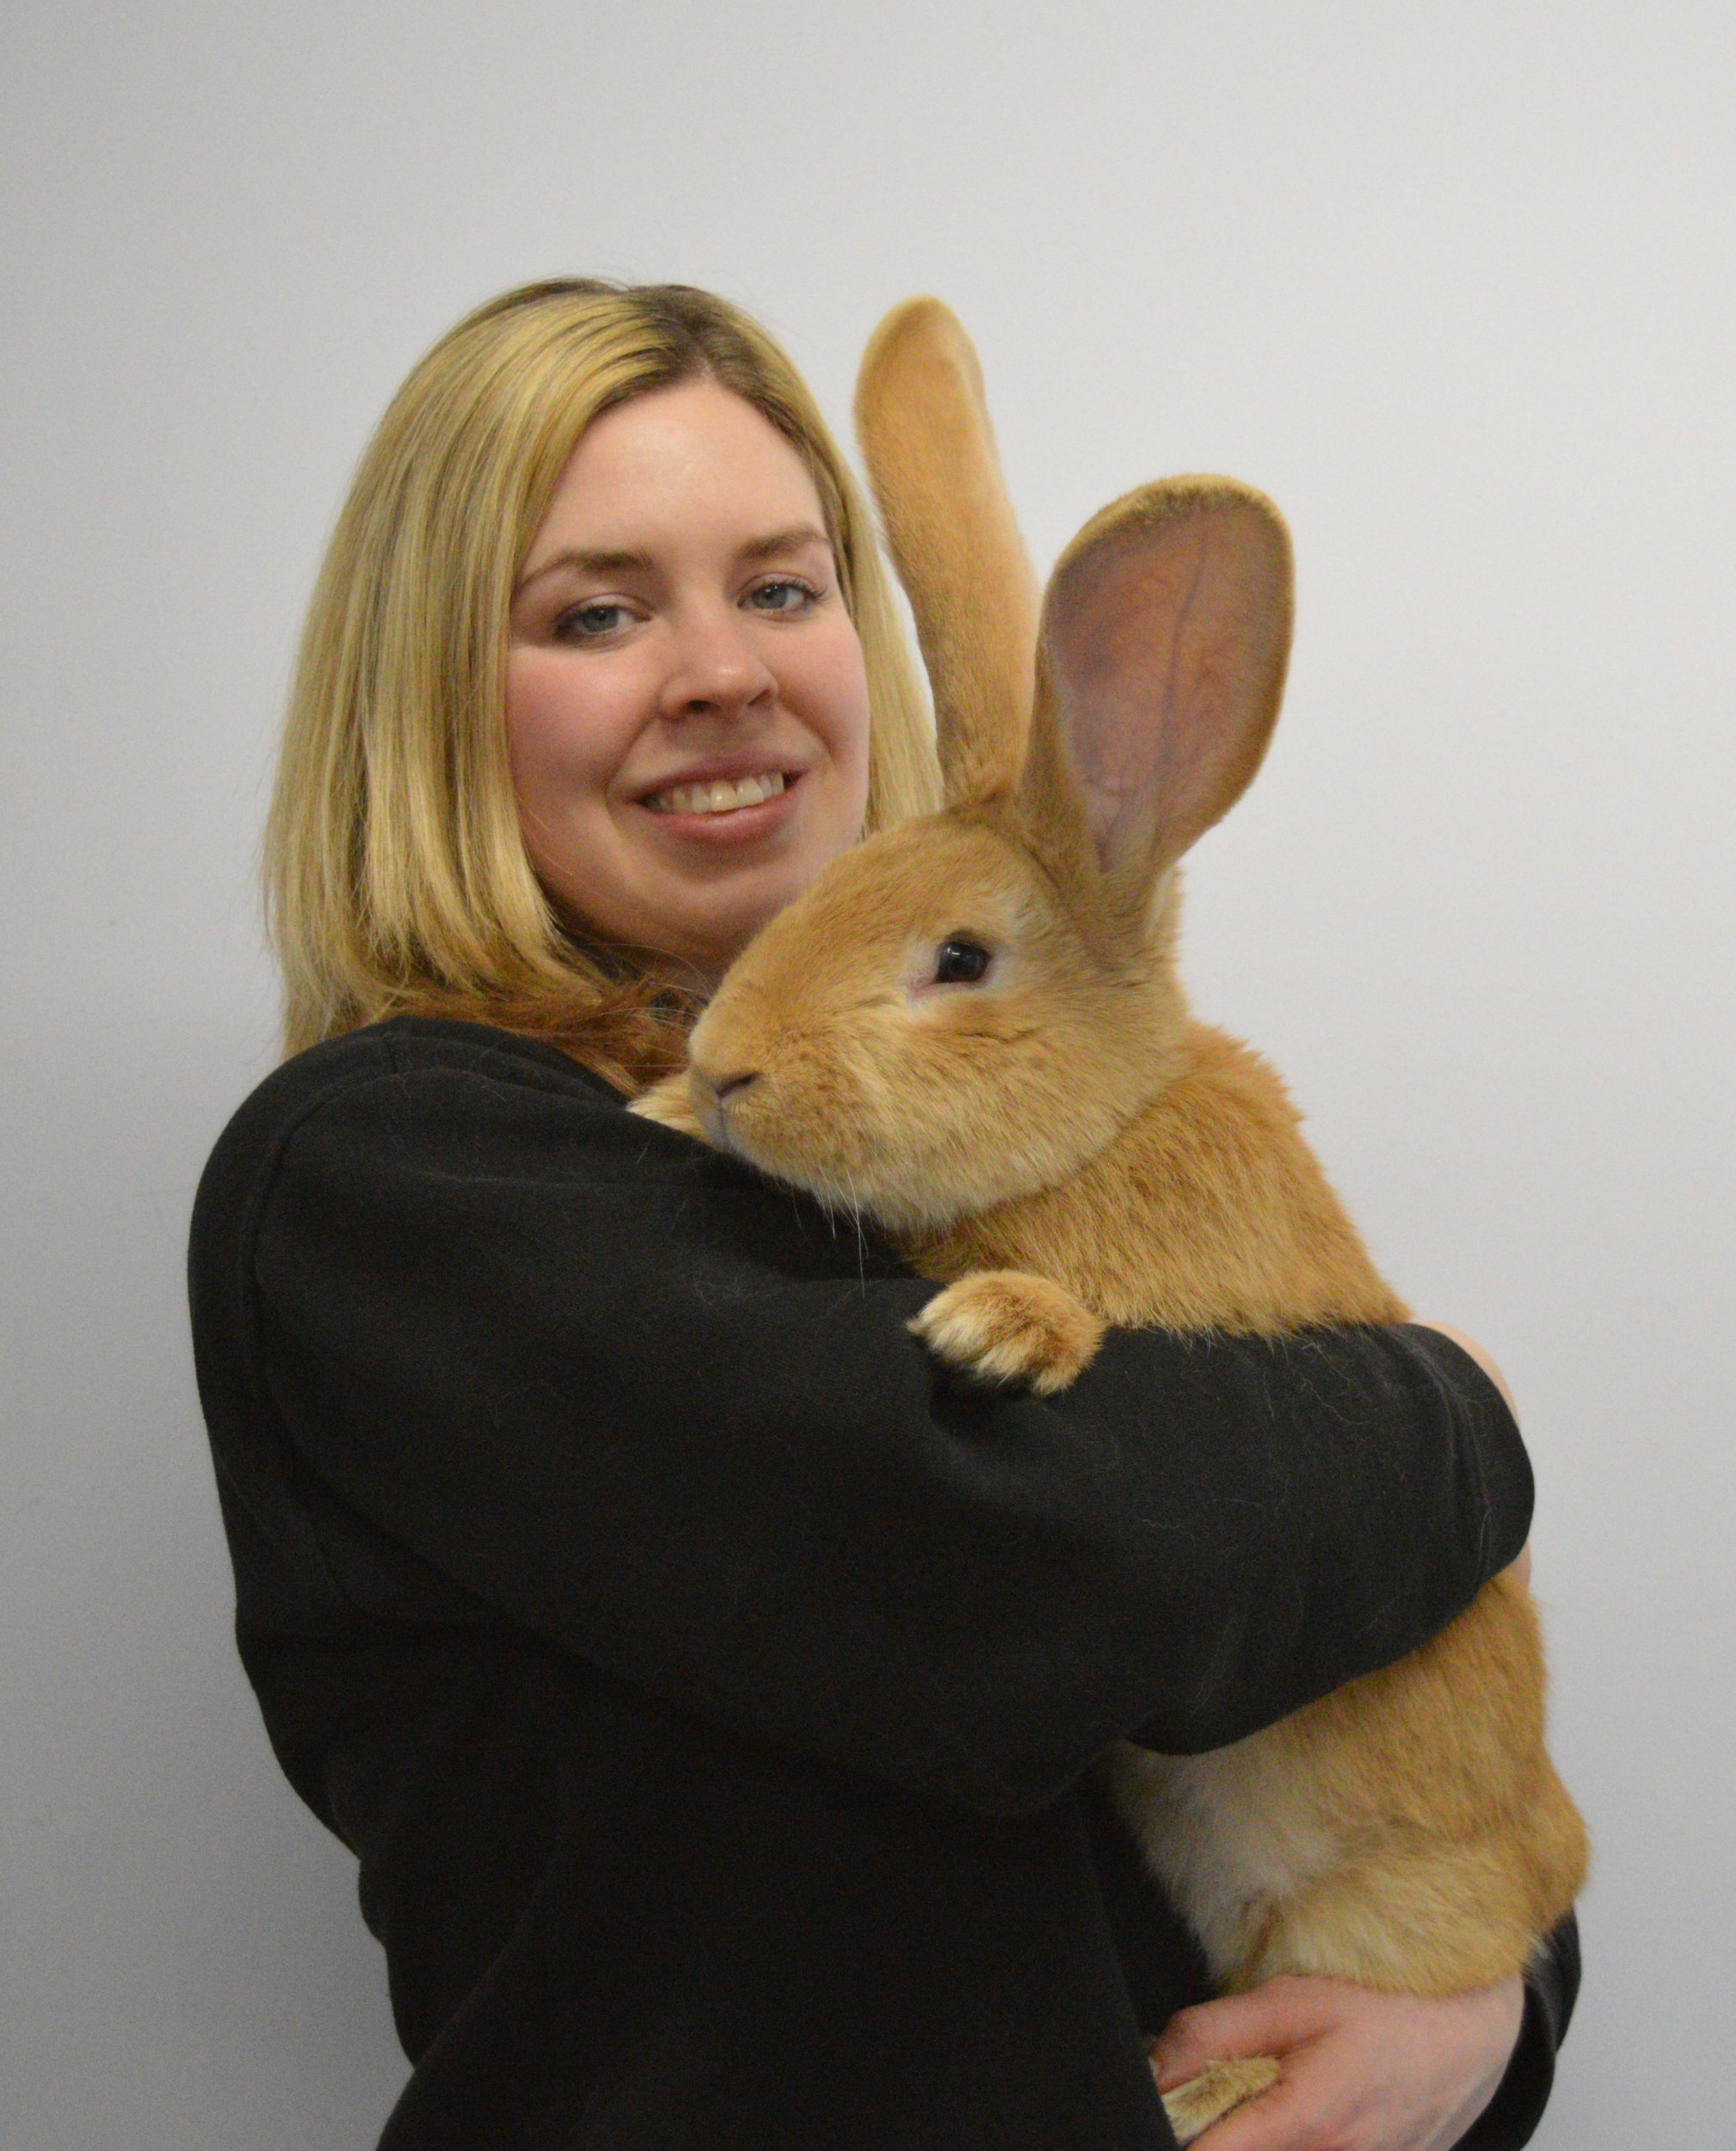 Scottish SPCA undated handout photo of Animal Care Assistant Emma Calder with seven month old continental giant rabbit named Atlas who is seeking a new home. PRESS ASSOCIATION Photo. Issue date: Tuesday February 2, 2016. Staff at the charity's centre in Cardonald, Glasgow, took in the rabbit when his owner could no longer look after him. See PA story ANIMALS Rabbit. Photo credit should read: Scottish SPCA /PA Wire NOTE TO EDITORS: This handout photo may only be used in for editorial reporting purposes for the contemporaneous illustration of events, things or the people in the image or facts mentioned in the caption. Reuse of the picture may require further permission from the copyright holder.